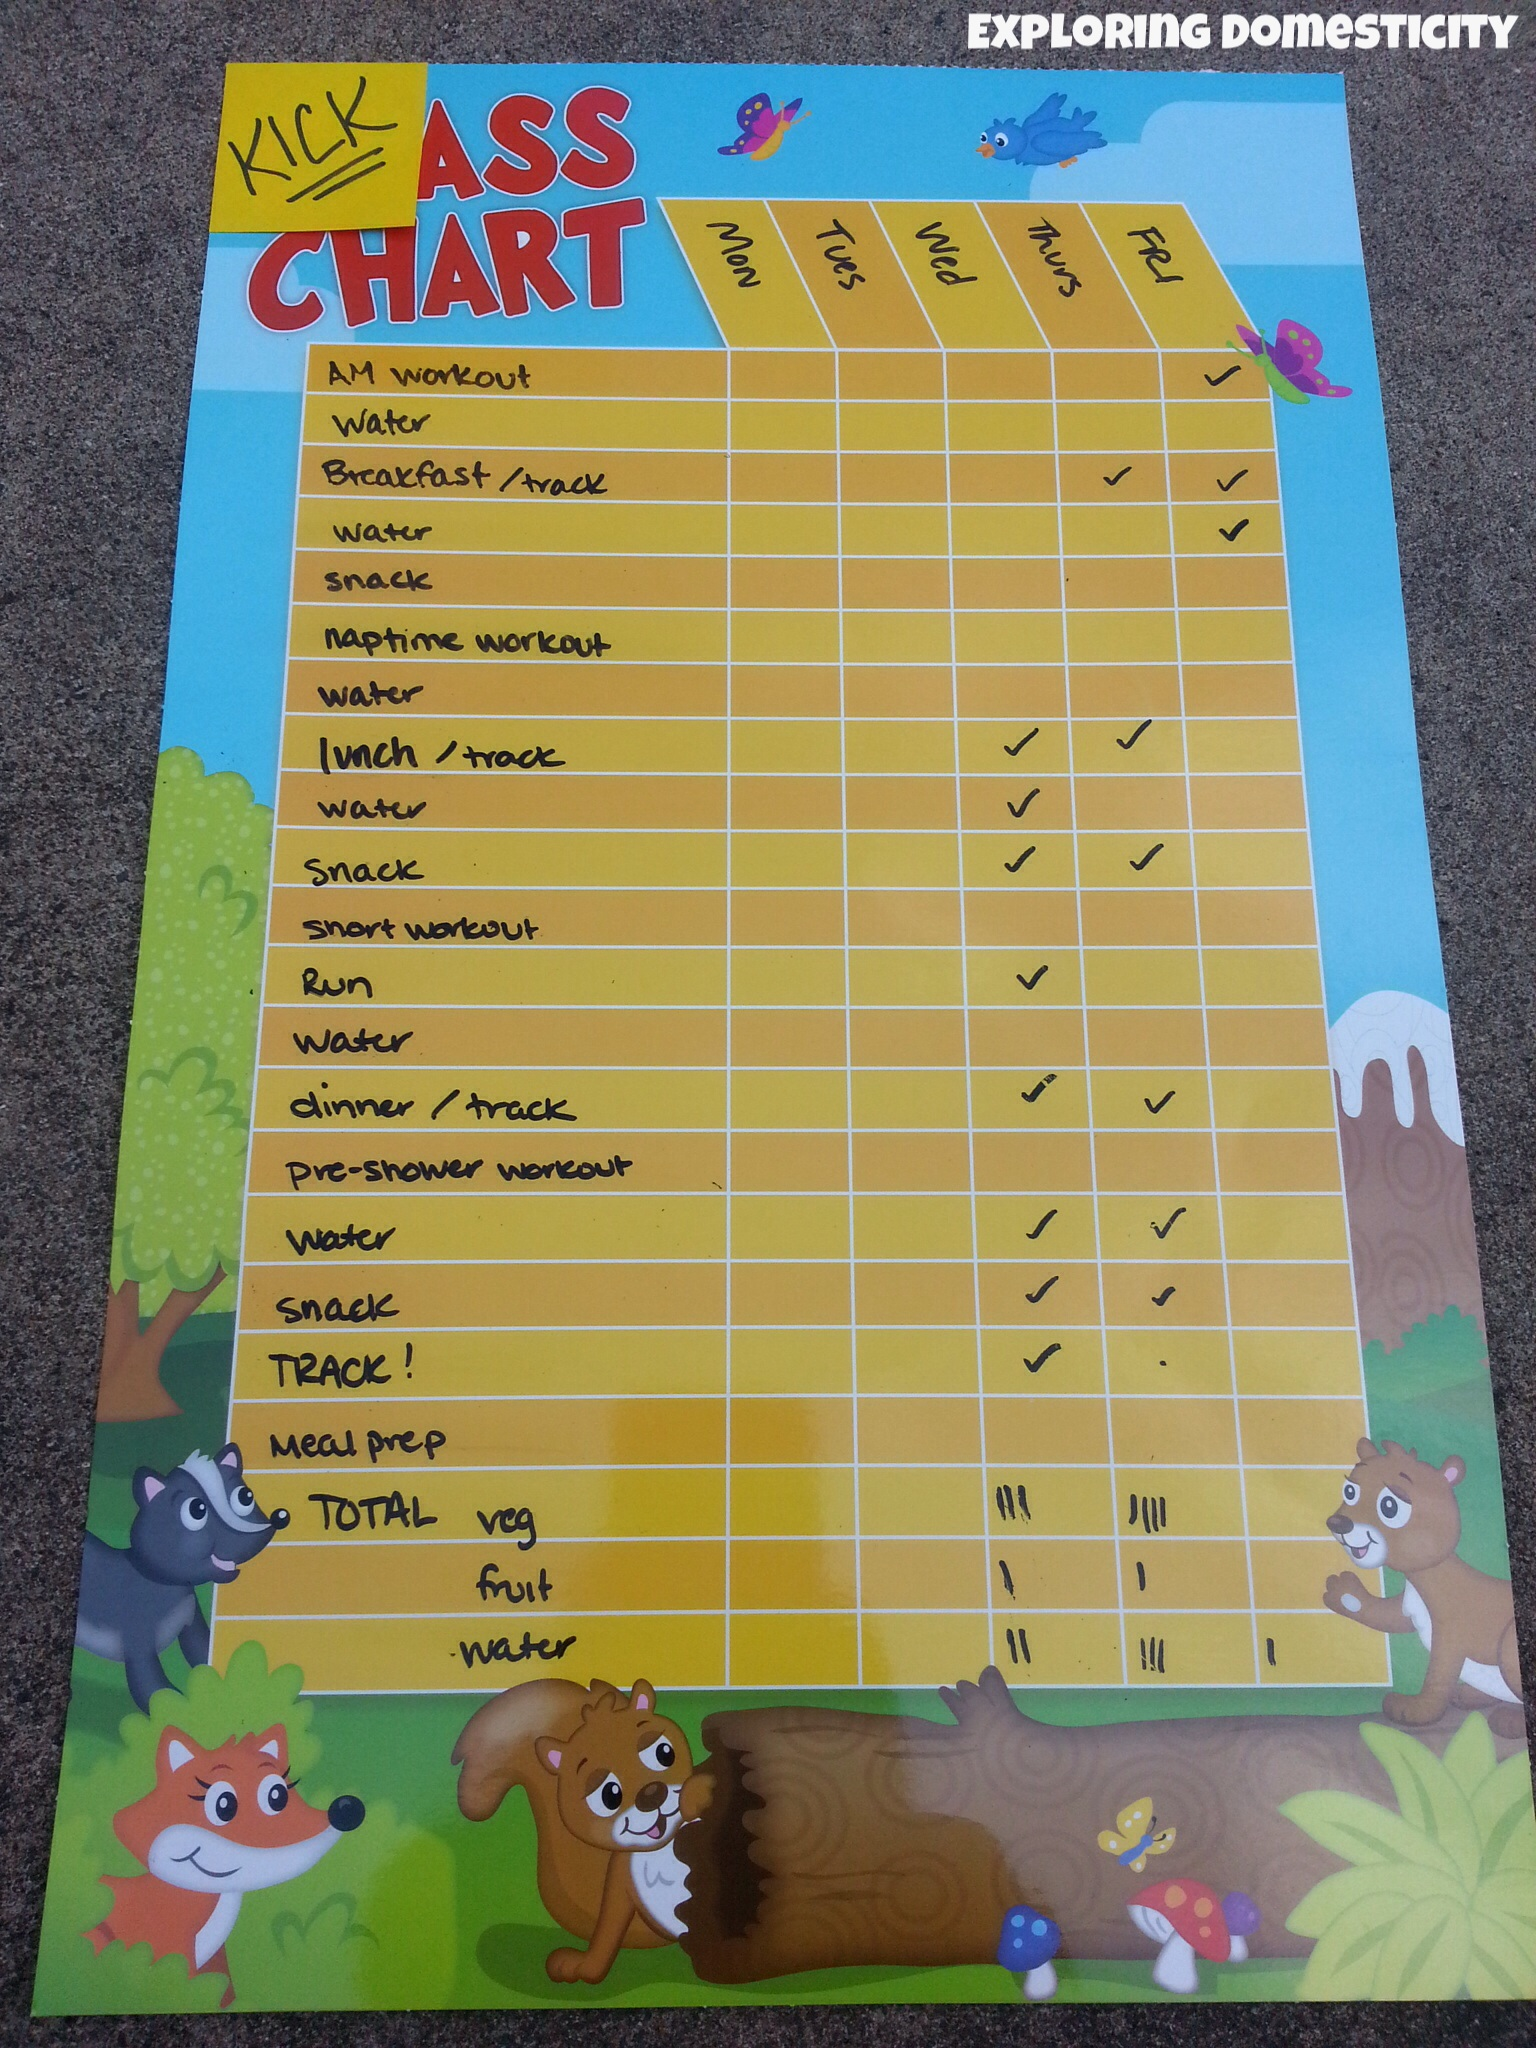 Dollar store chart for tracking fitness archives exploring charting weight loss and fitness goals nvjuhfo Choice Image